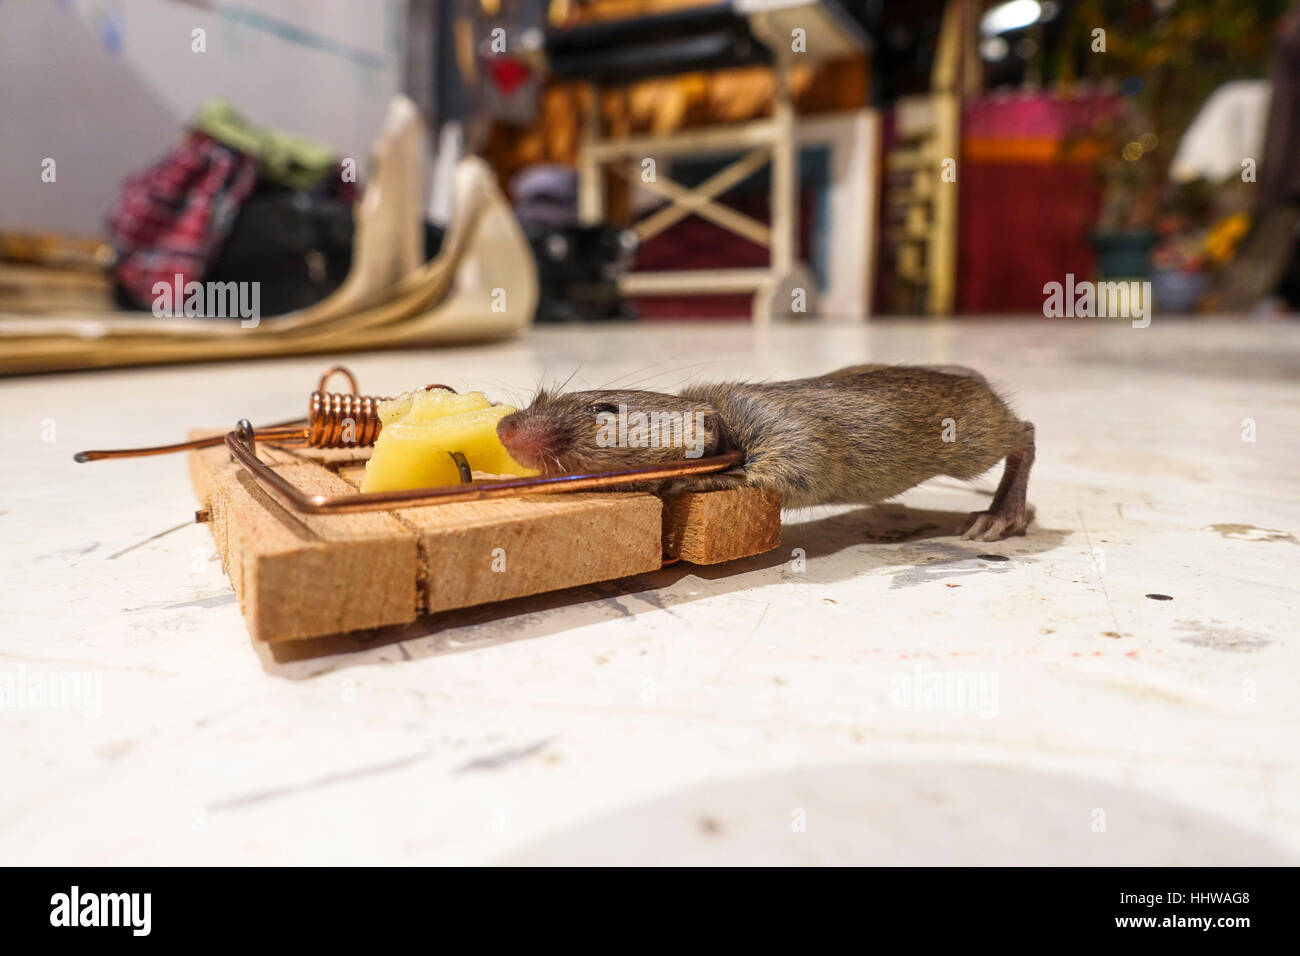 Mausefalle Köder Mice Cheese Stockfotos & Mice Cheese Bilder - Alamy